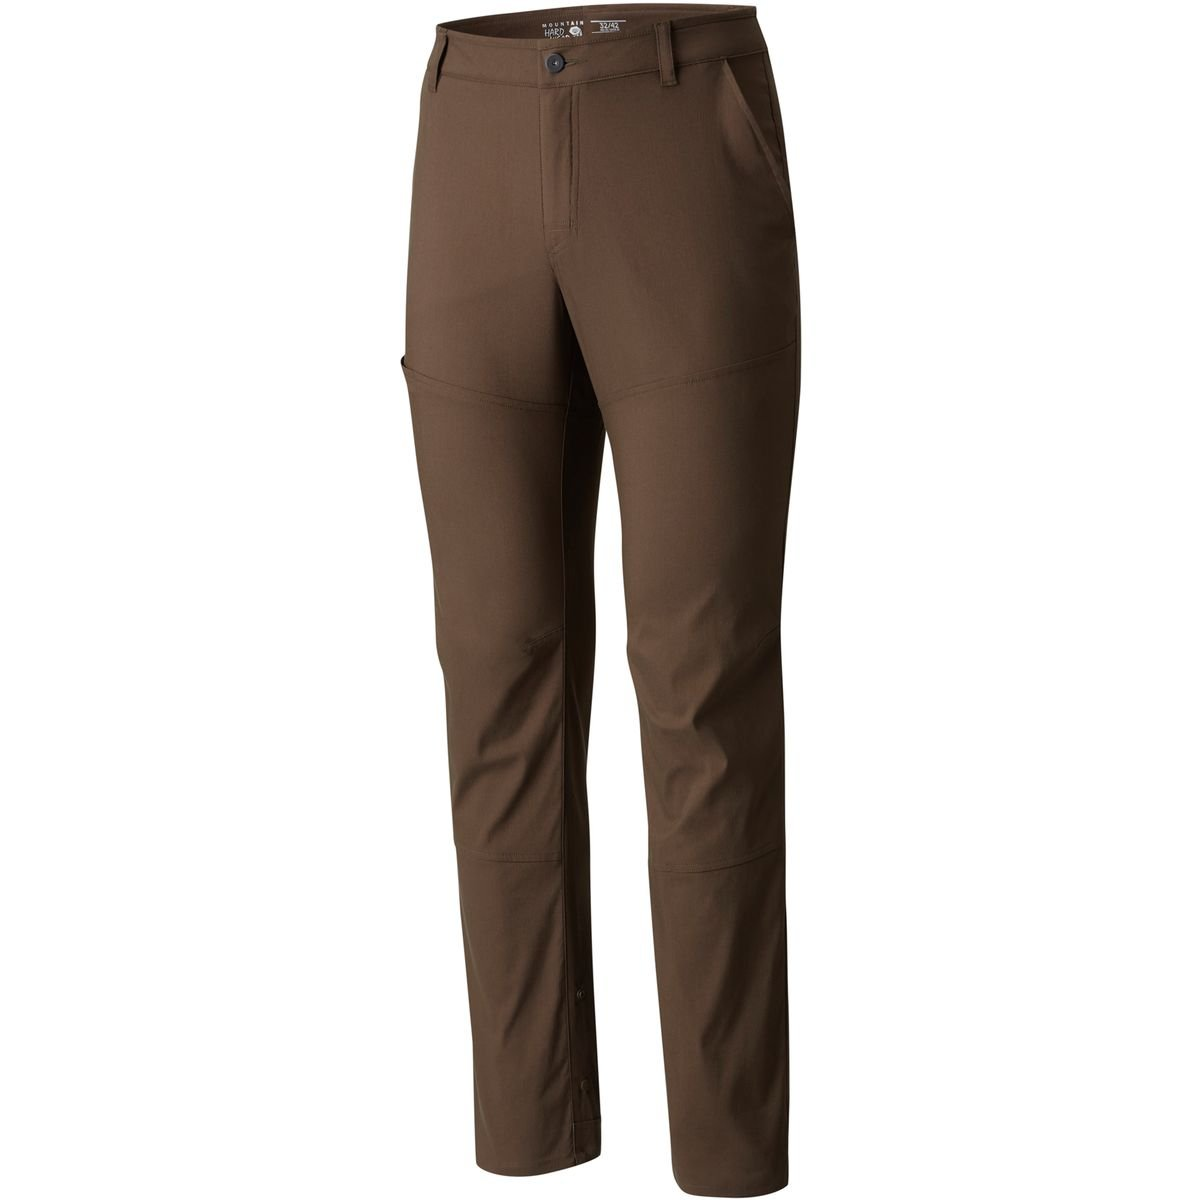 Mountain Hardwear Hardwear AP Pants – Men 's B073PVLYFV ツンドラ,34W x 32L